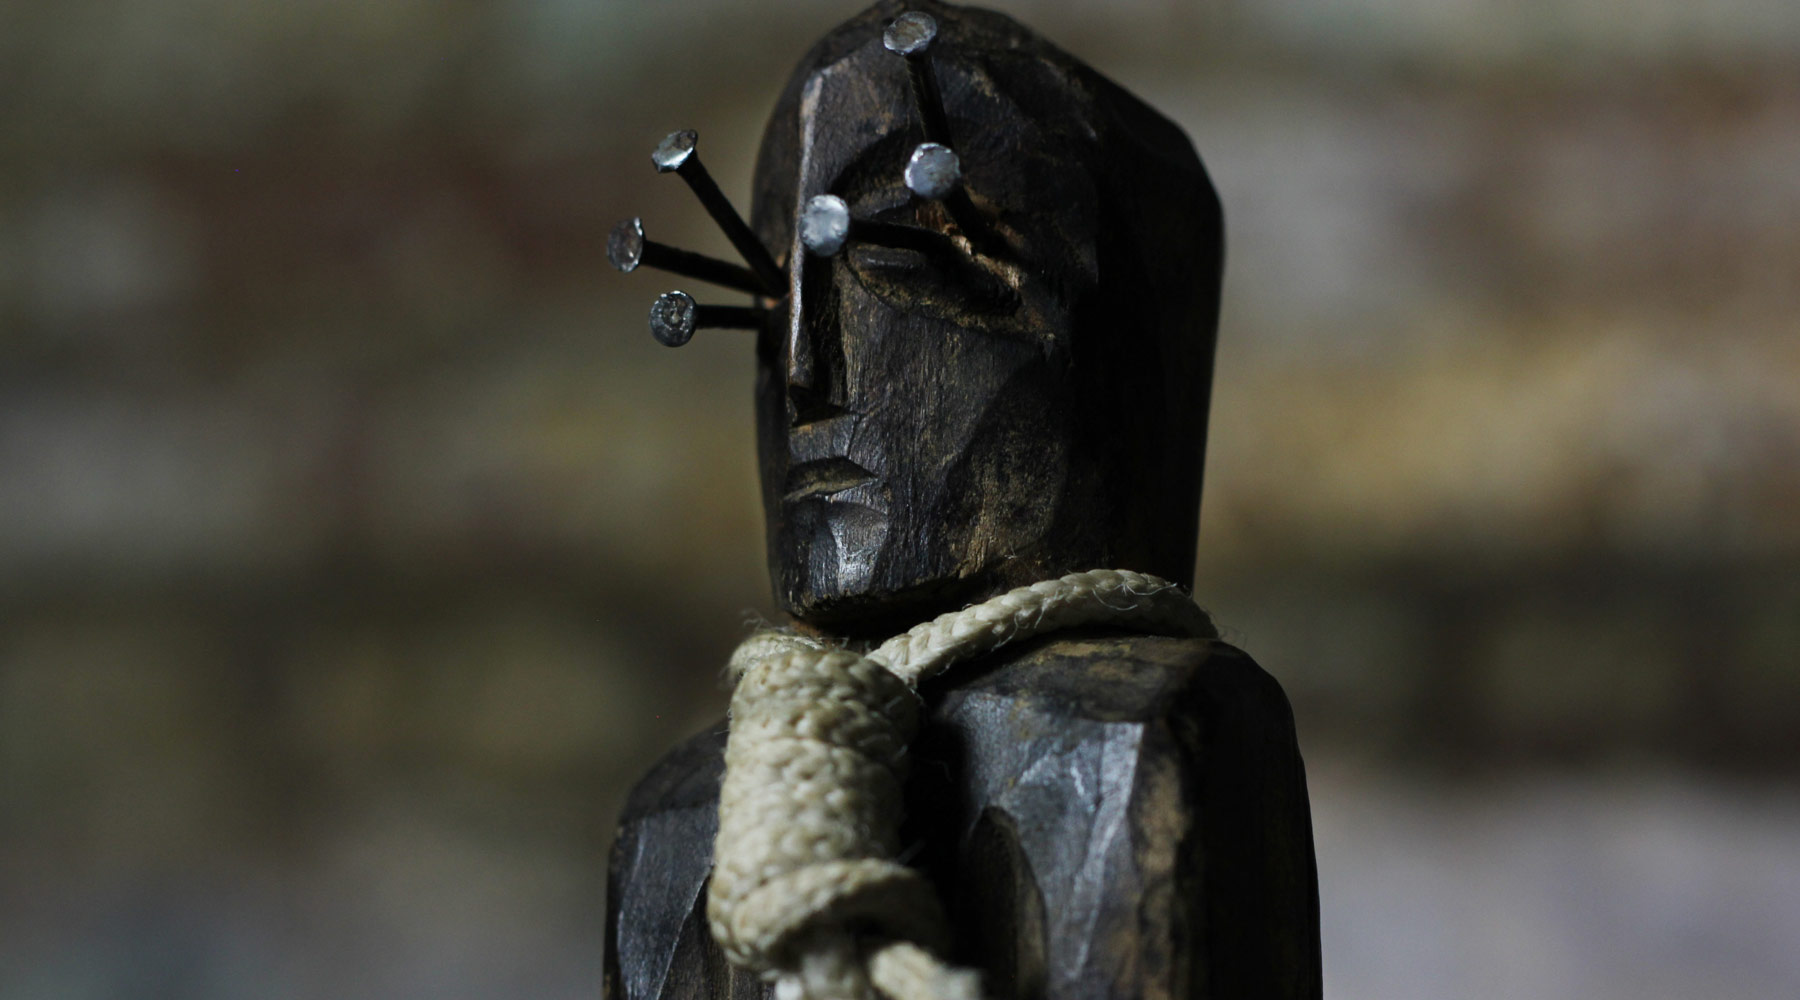 The Crone, a haunted artifact in the Newkirk Traveling Museum of the Paranormal & Occult